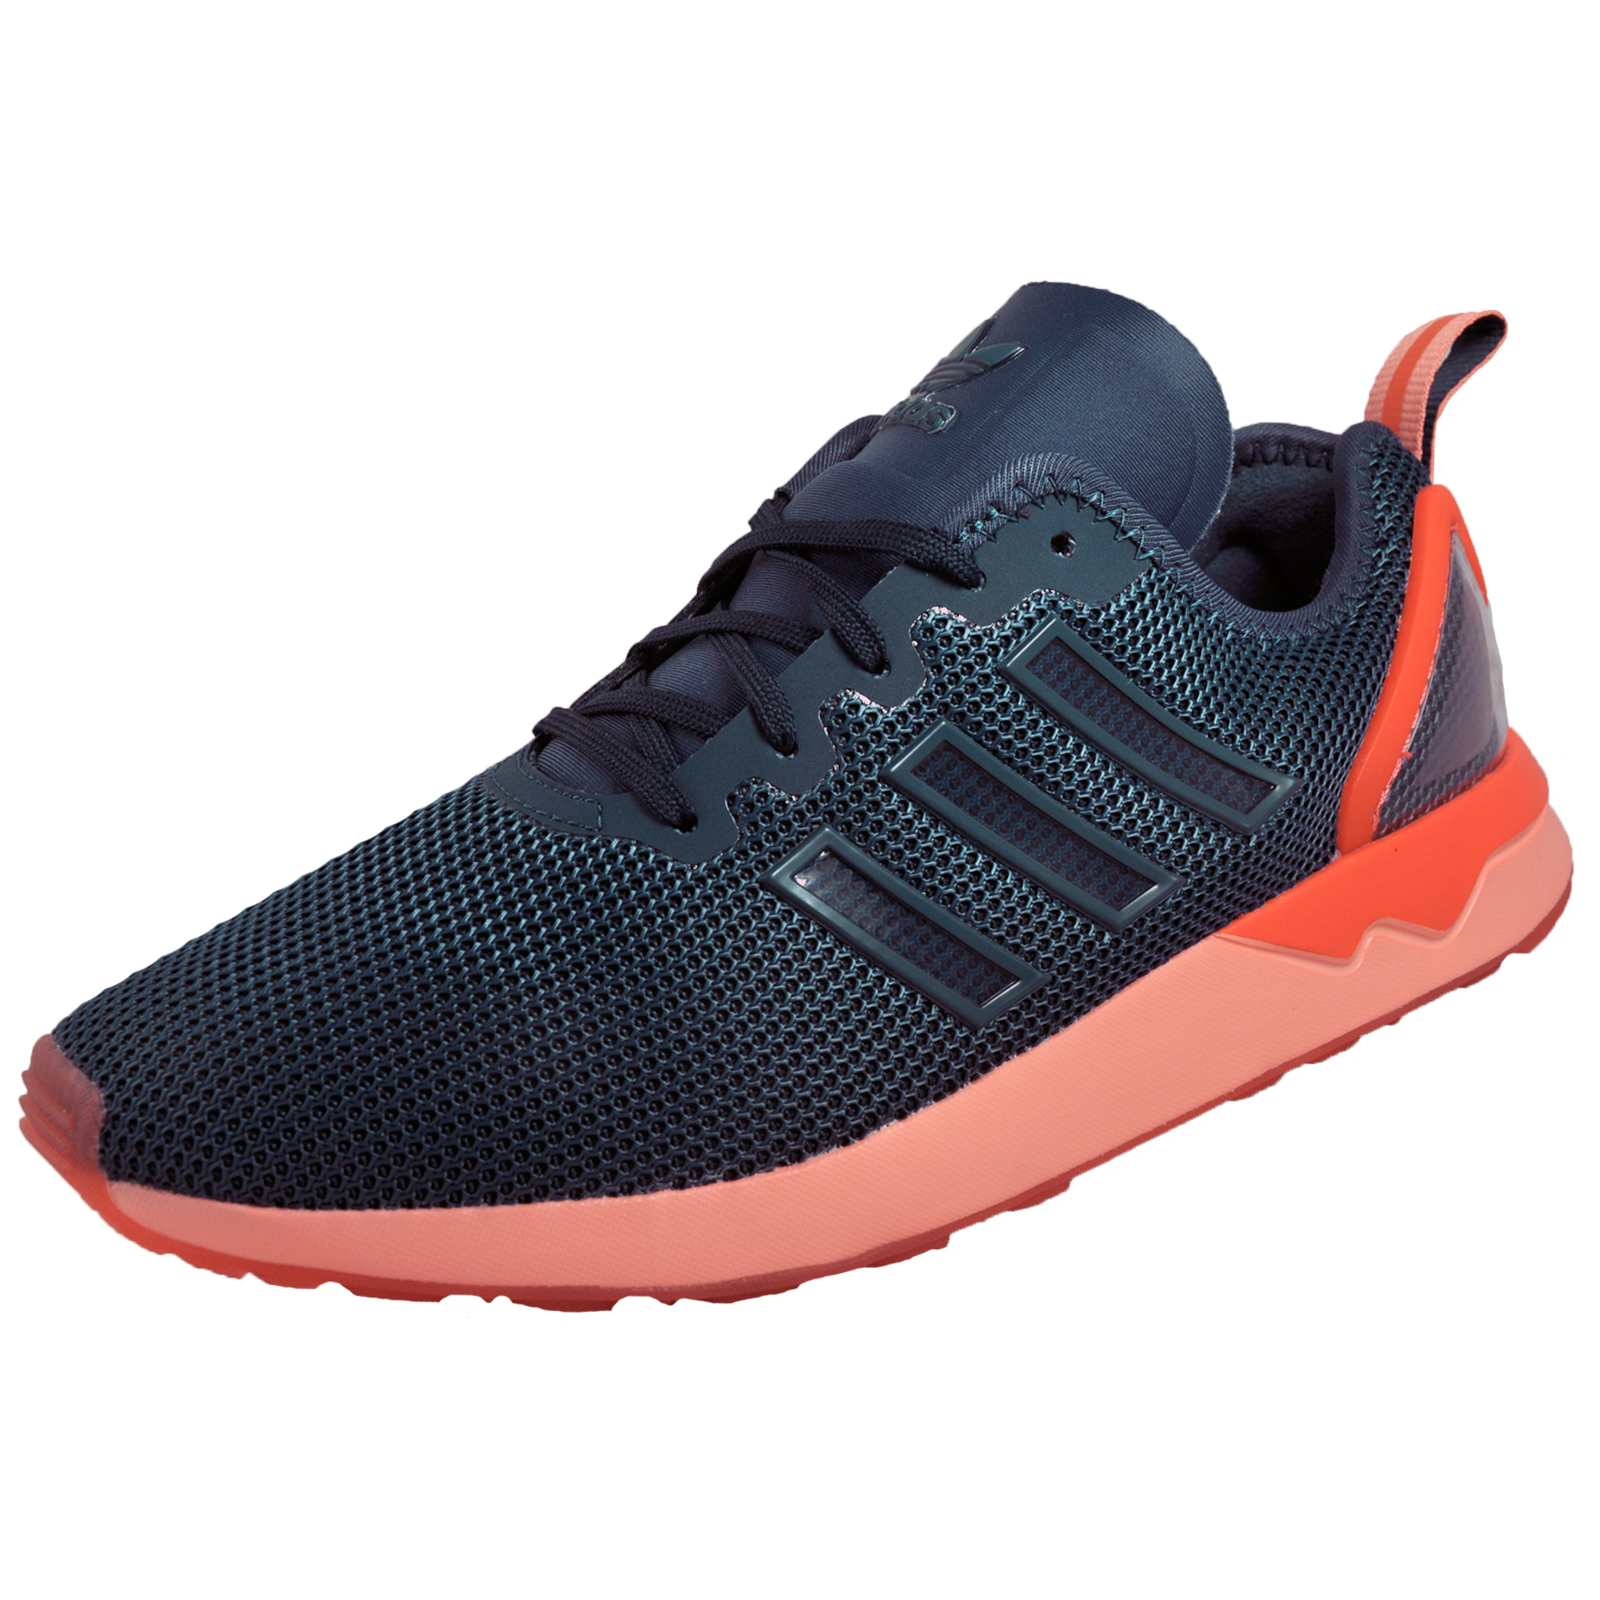 cda74282fd253 Details about Adidas Originals ZX Flux ADV Mens Classic Casual Running Gym  Trainers Navy